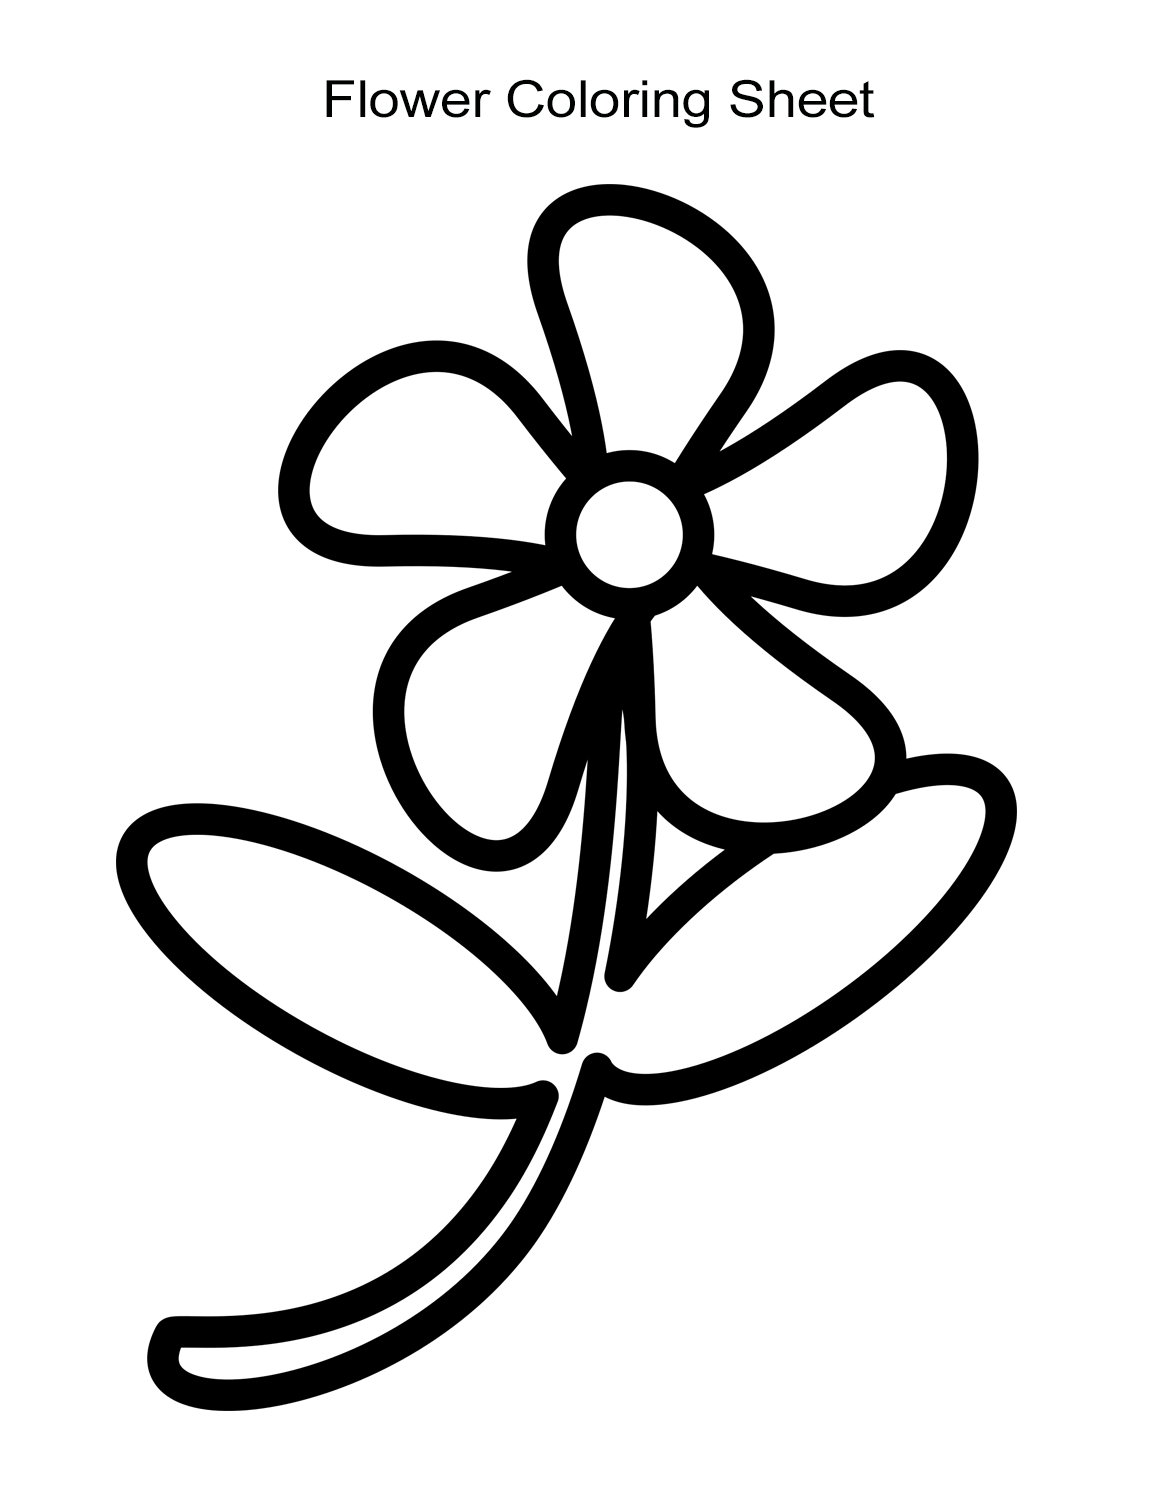 picture of flowers to colour 10 flower coloring sheets for girls and boys all esl picture of flowers to colour